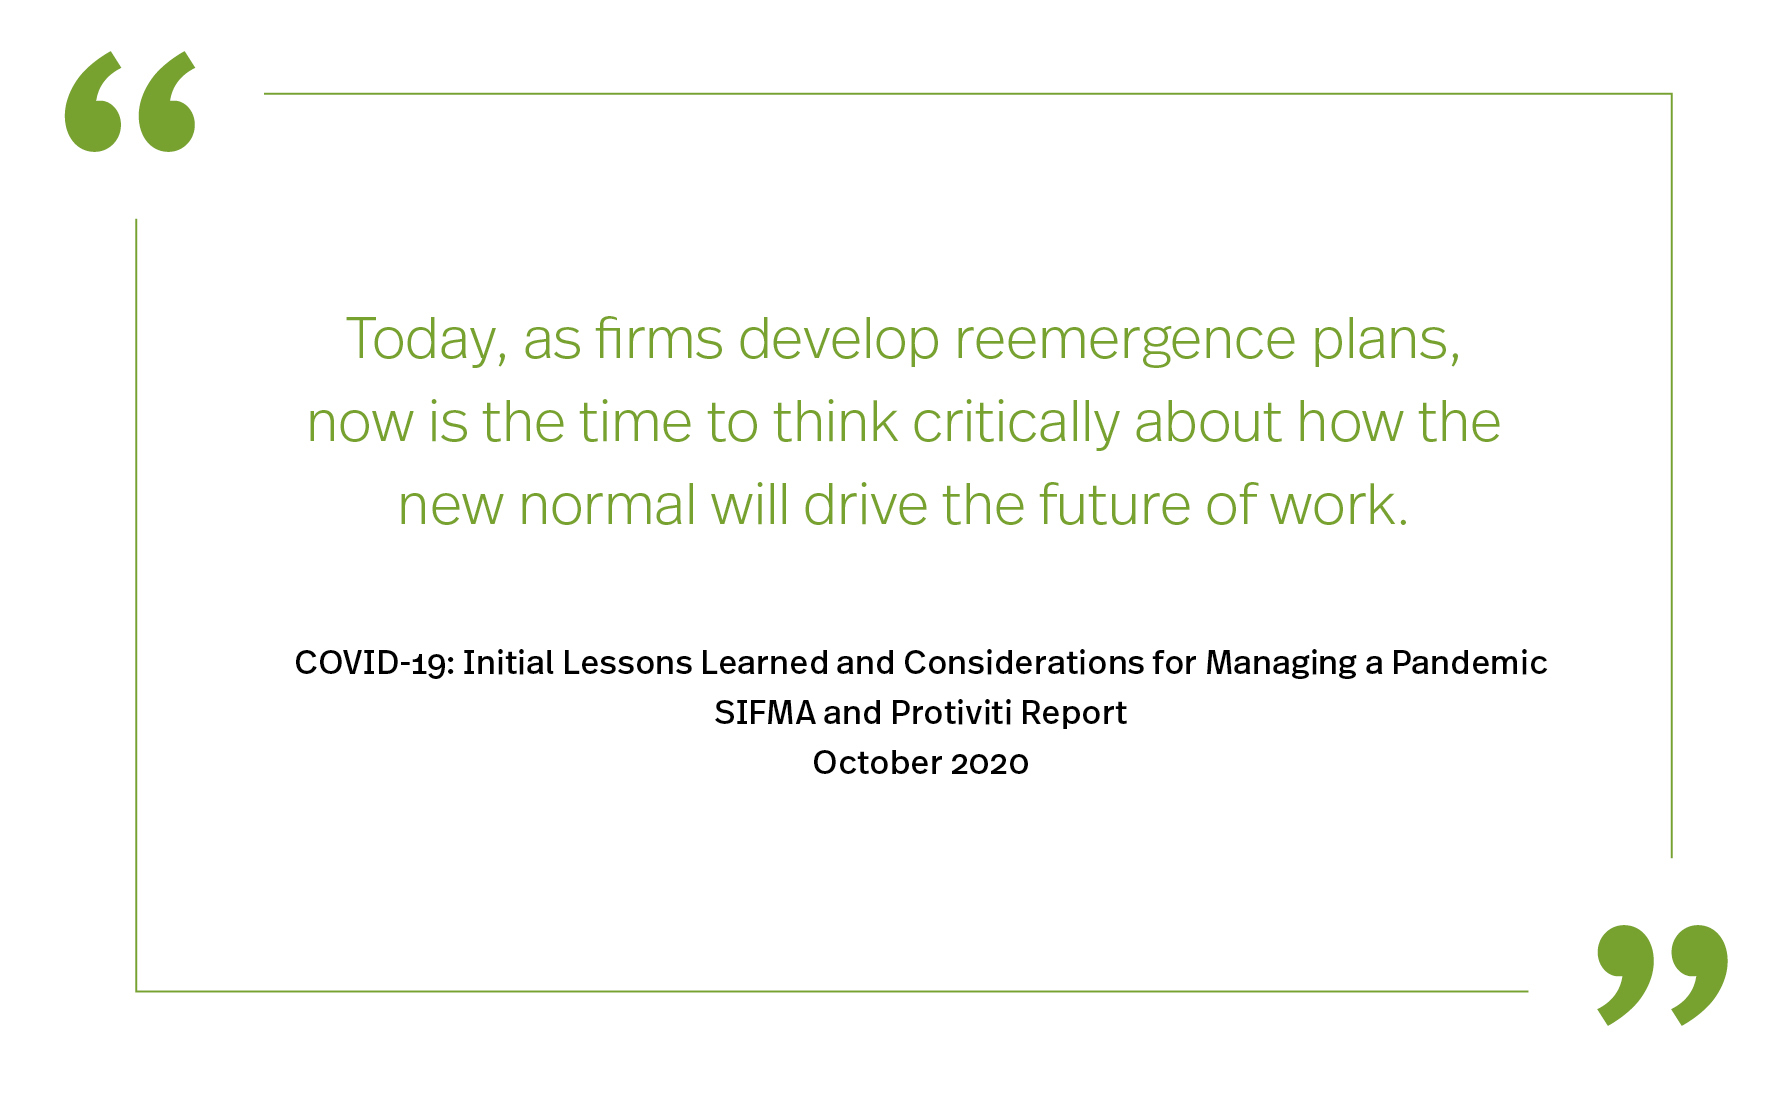 Future of work Quote